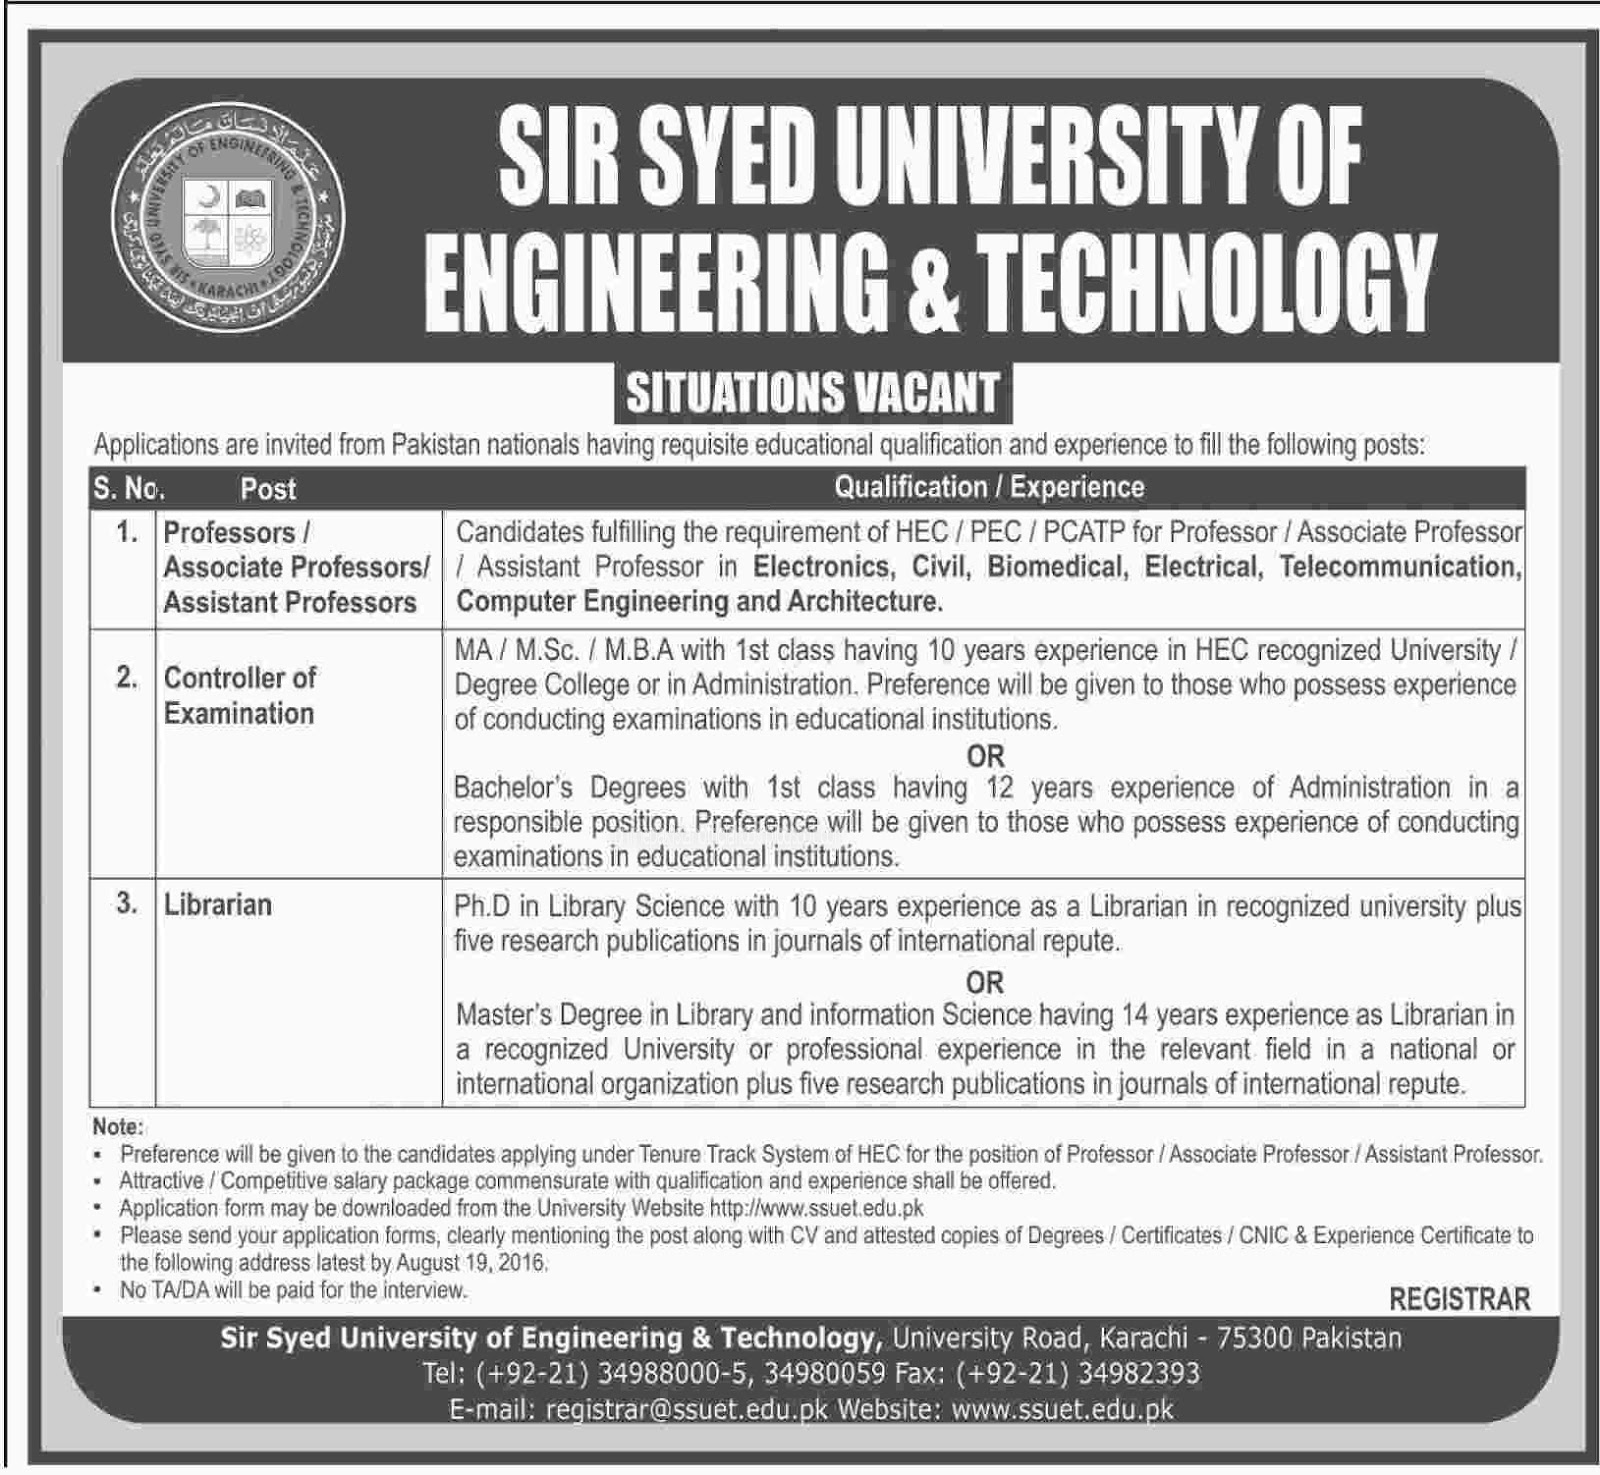 Sir Syed University of Engineering & Technology Jobs Aug 2016